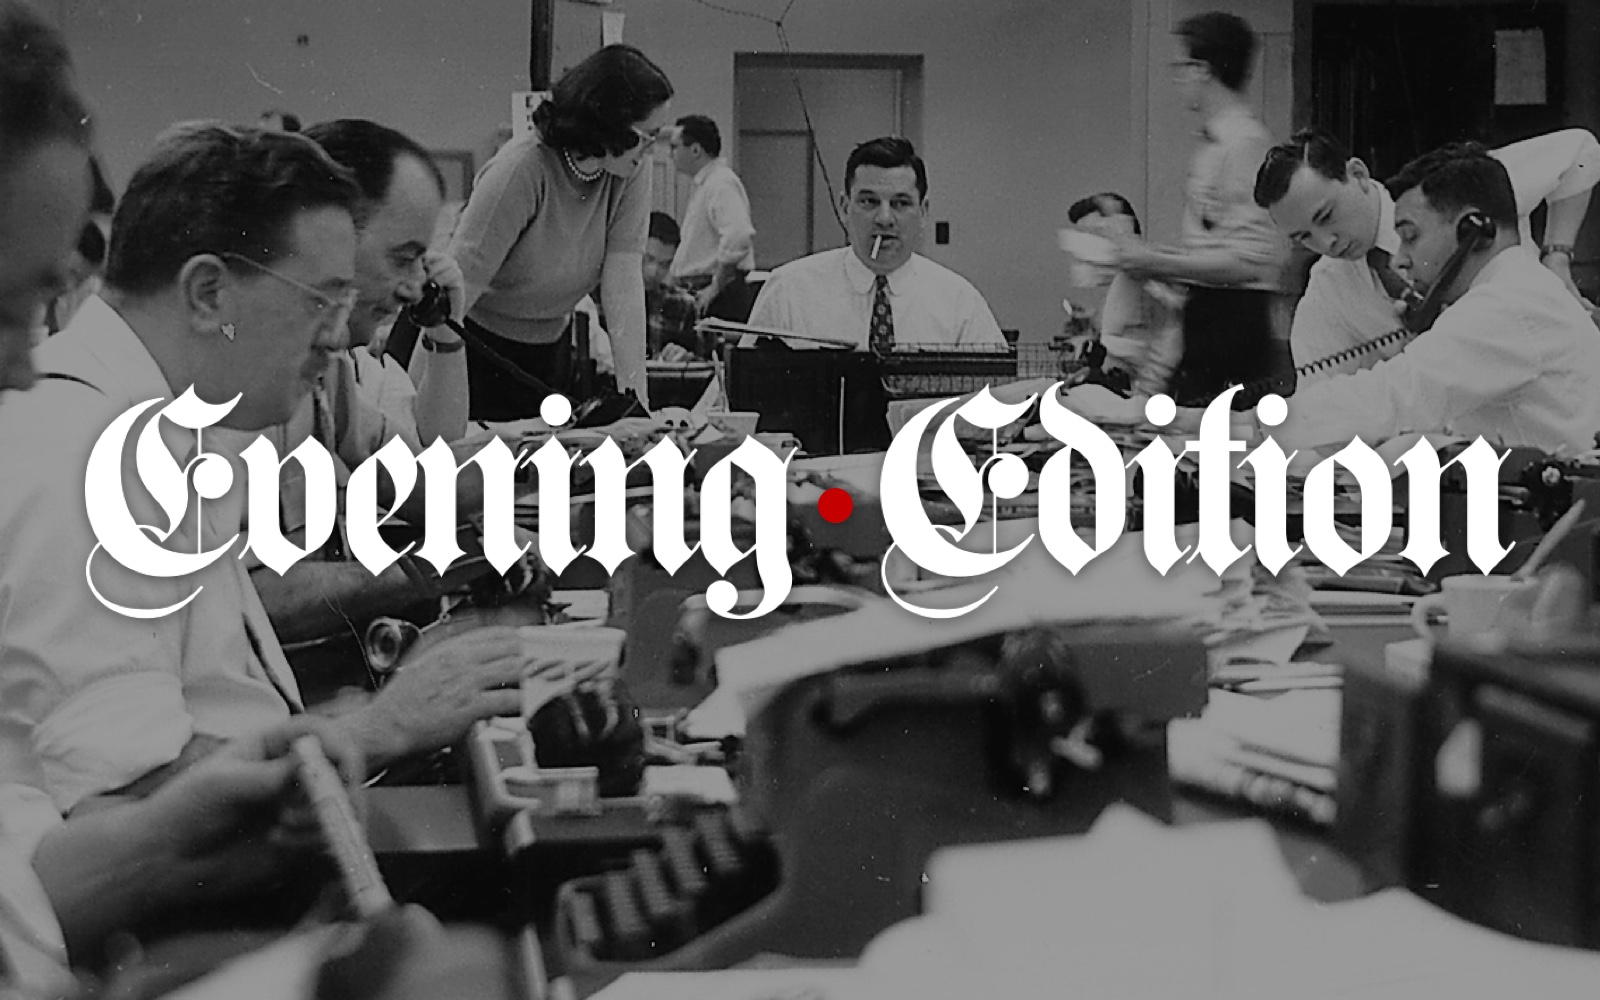 Evening Edition's branding was intended as a throwback to vintage newsrooms